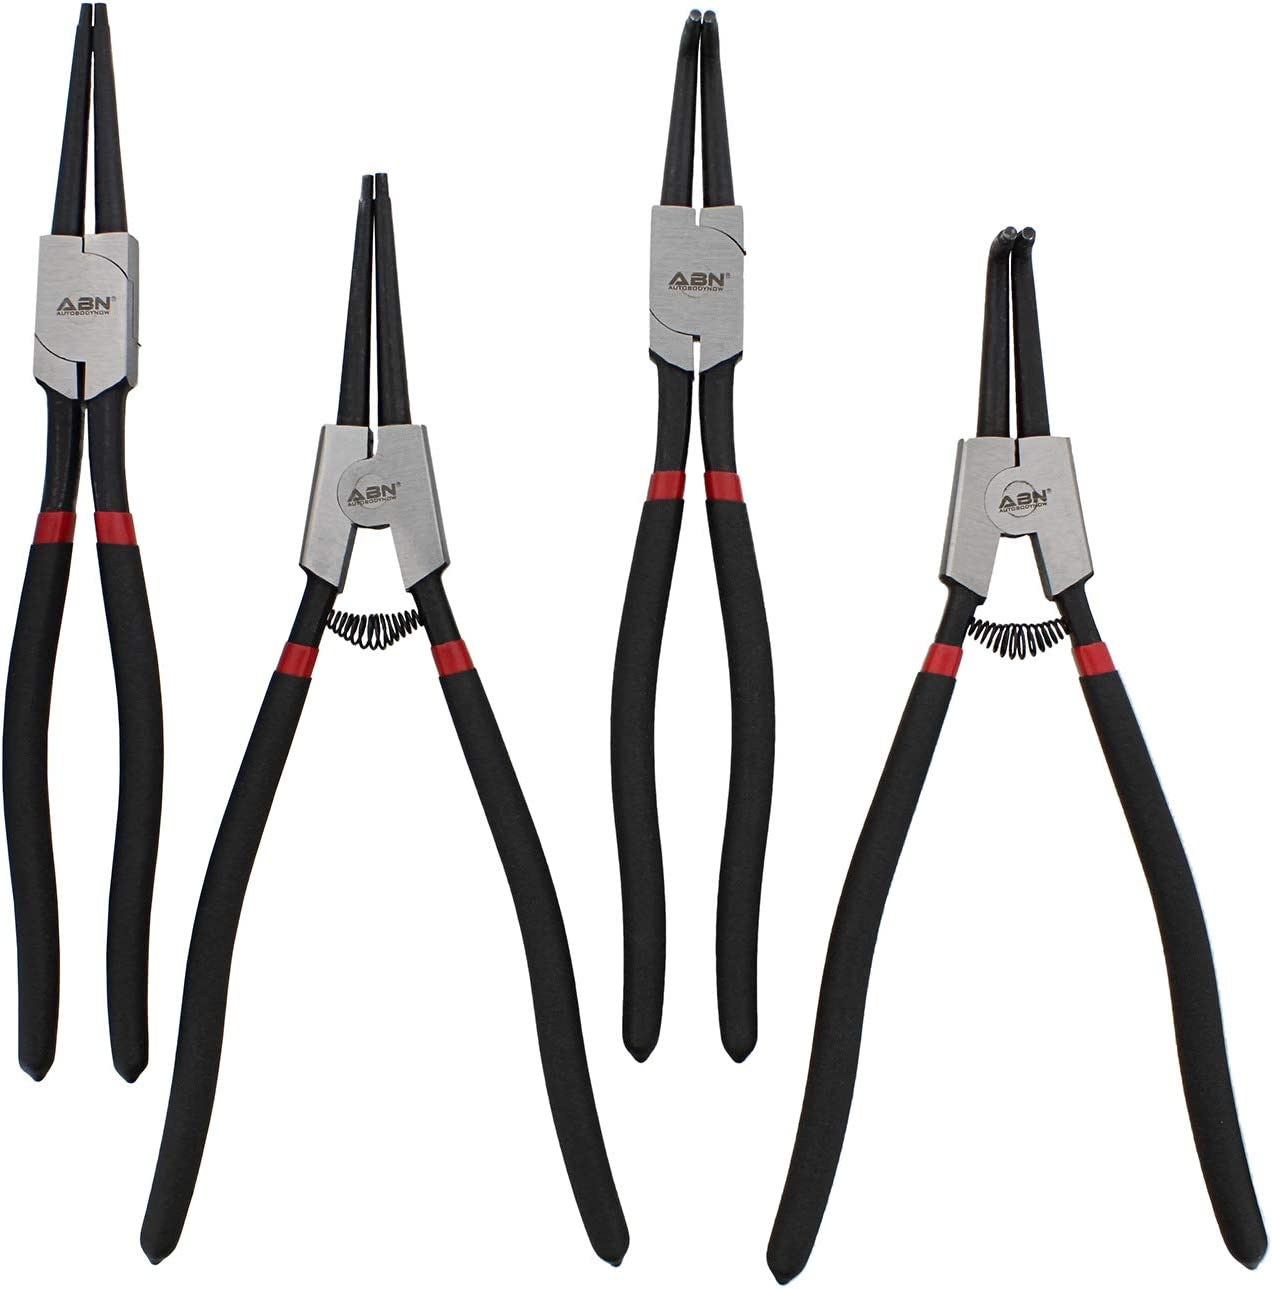 13 IN Circlip Pliers with .090 IN ABN Internal External Snap Ring Pliers Set